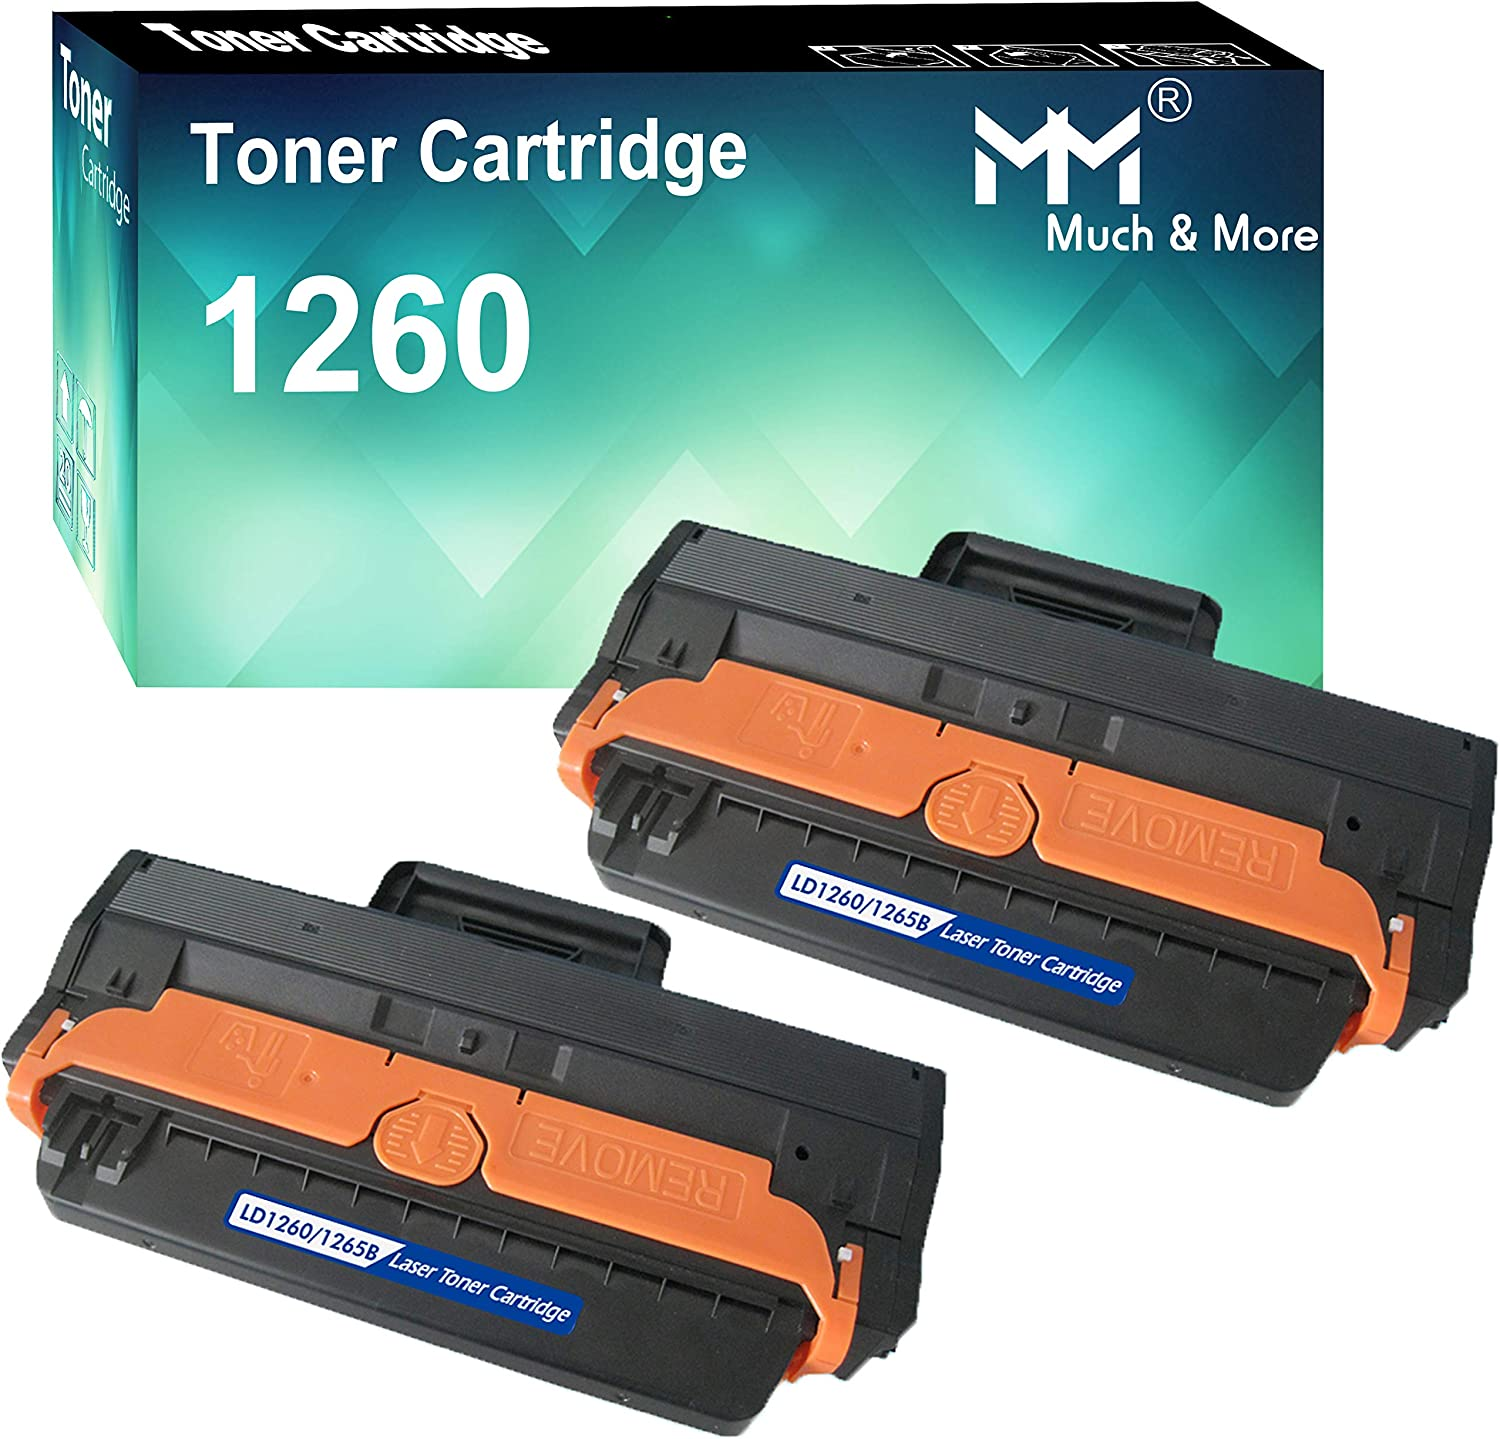 (2-Pack) Compatible Dell 1260 Dell 331-7328 RWXNT Toner Cartridge Used for Dell B1260dn B1260 B1265dn B1265dnf B1265dfw Series Printers, Sold by MuchMore